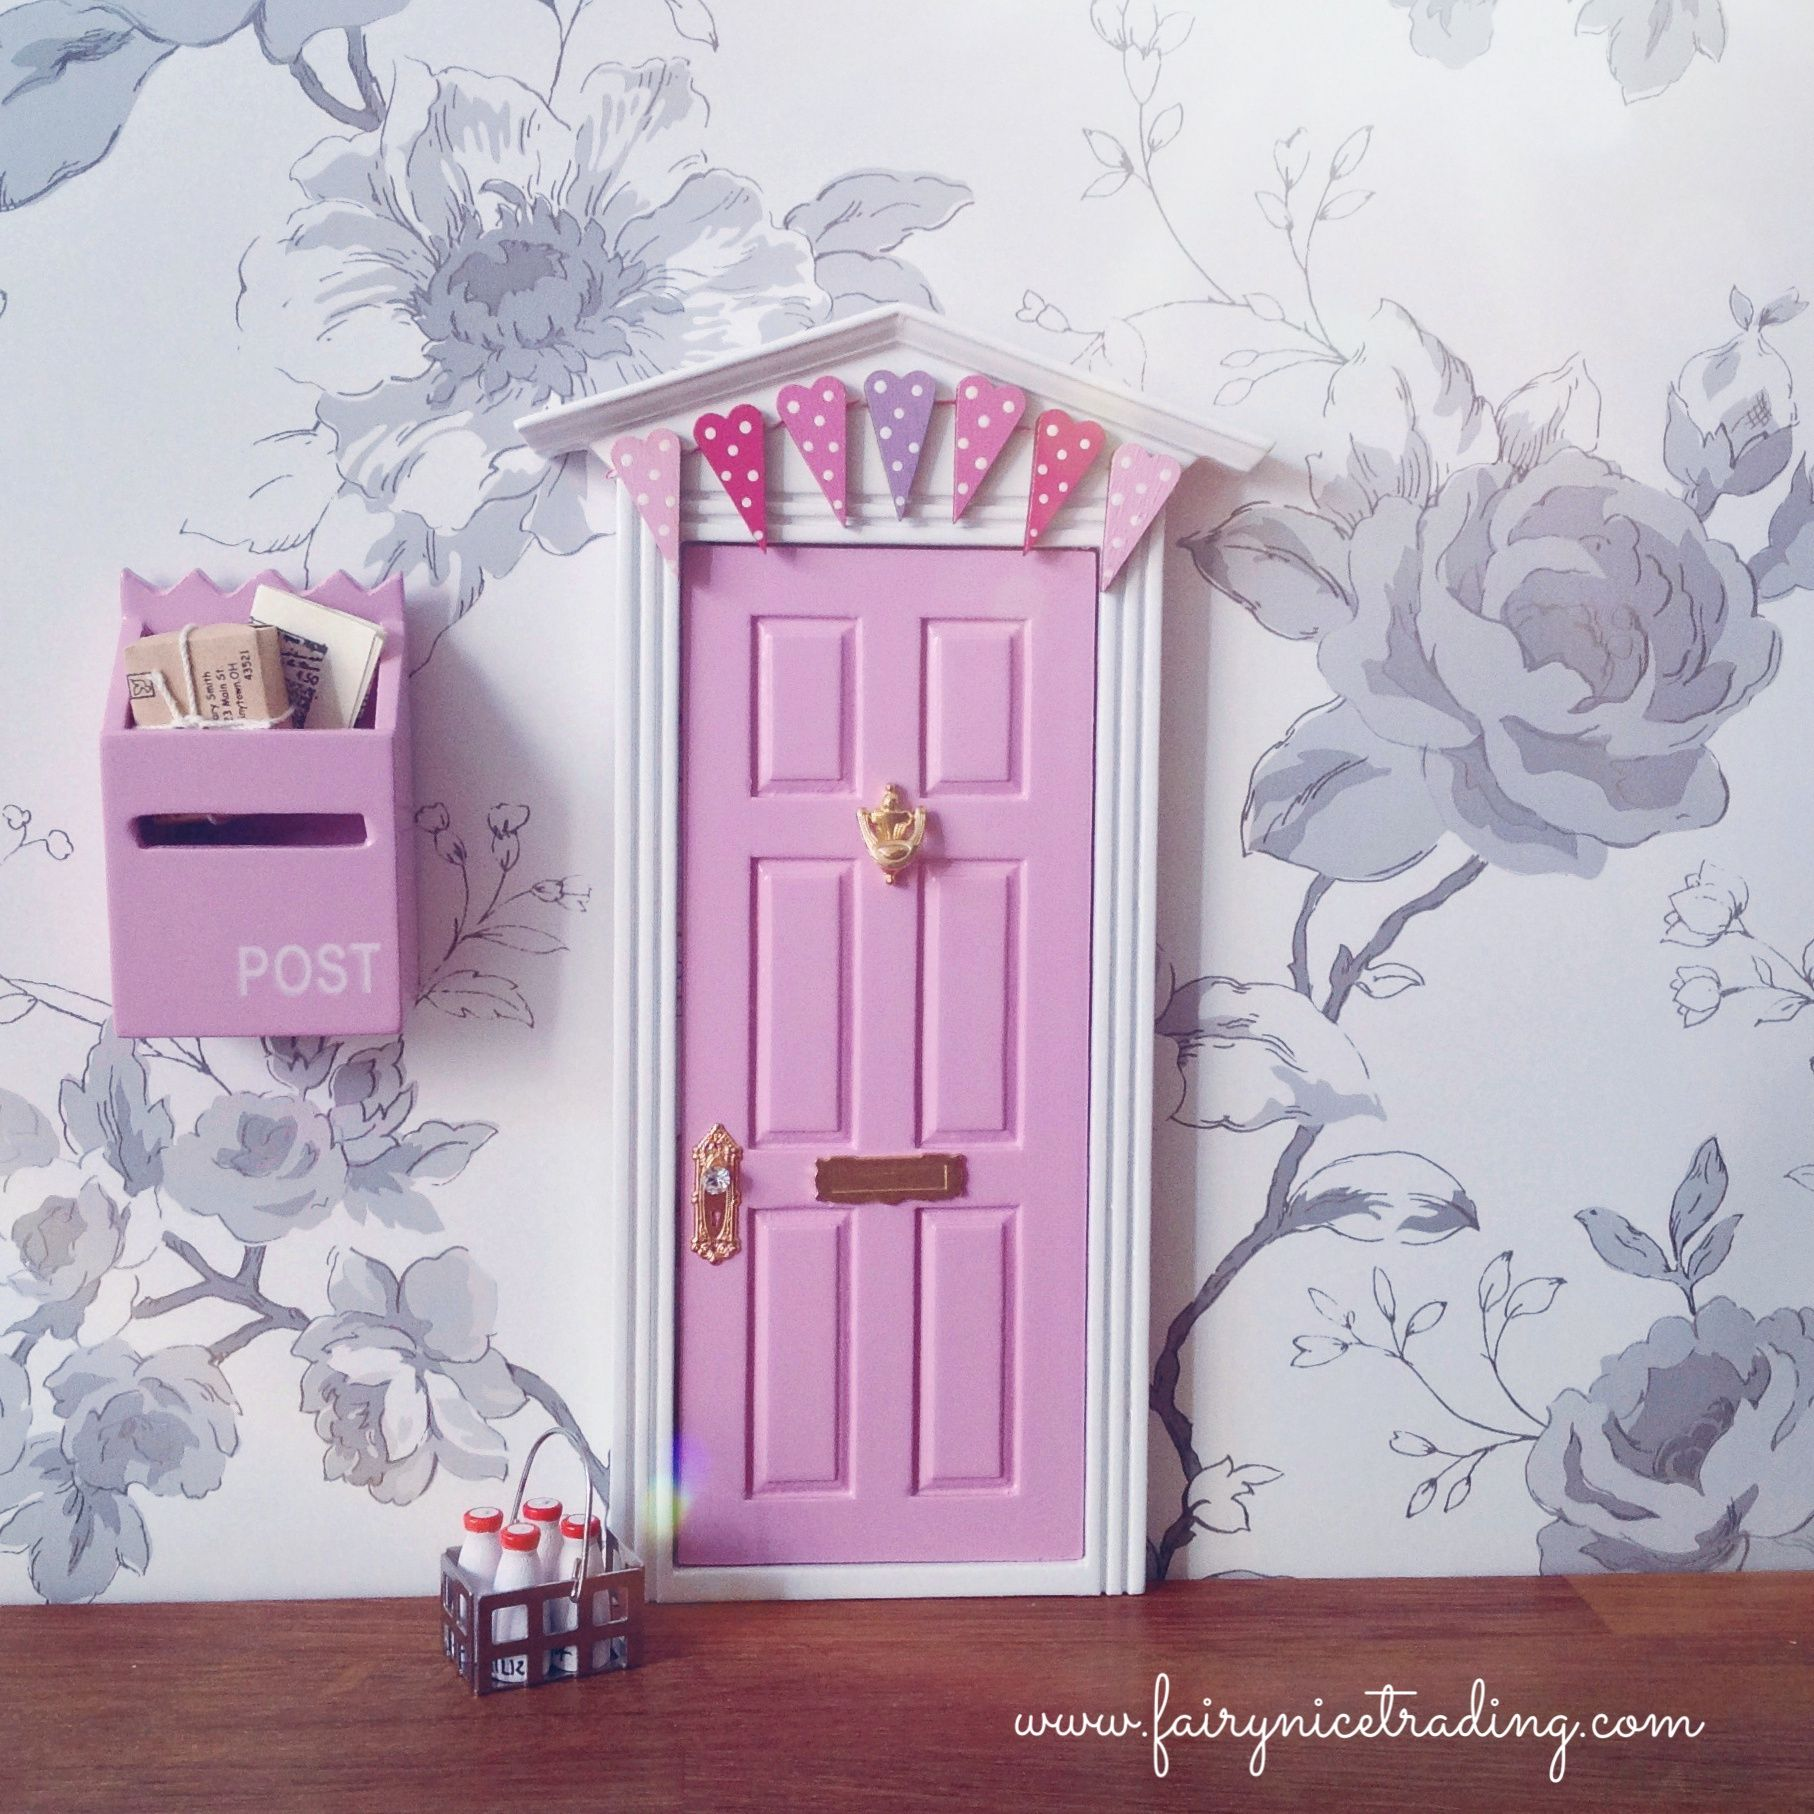 Magical Deliveries Fairy Door Accessory Fairy Door Accessories Fairy Door Fairy Doors